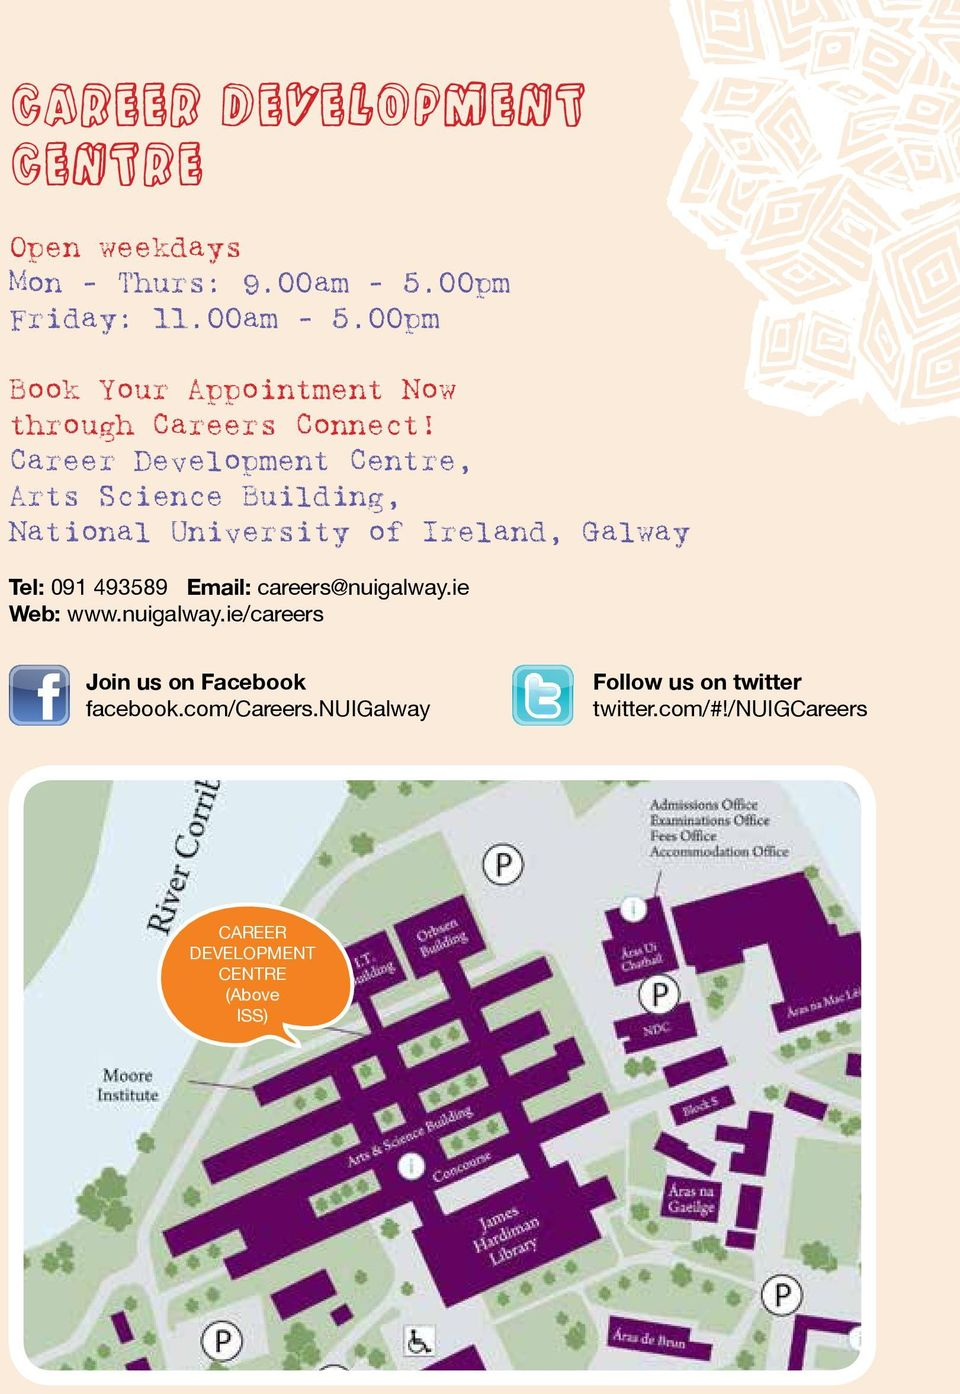 Career Development Centre, Arts Science Building, National University of Ireland, Galway Tel: 091 493589